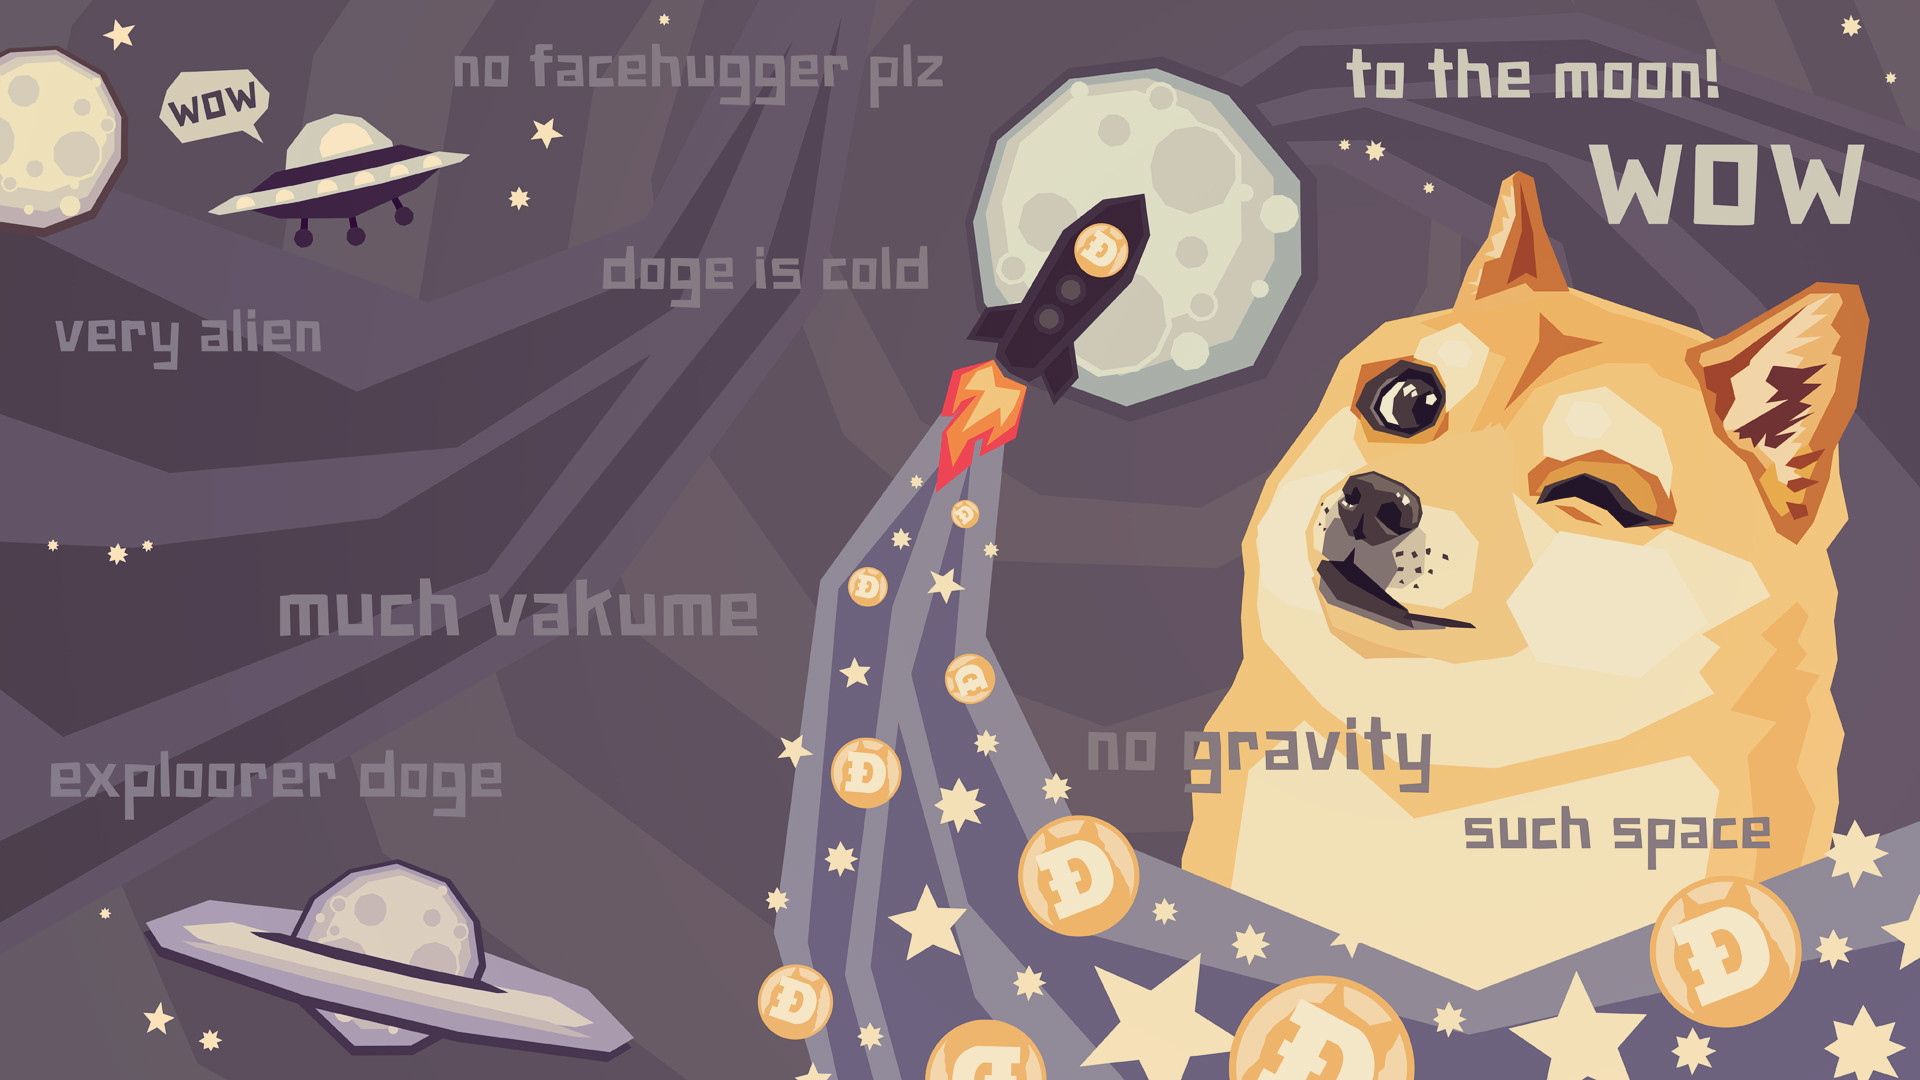 Doge Wallpaper To The